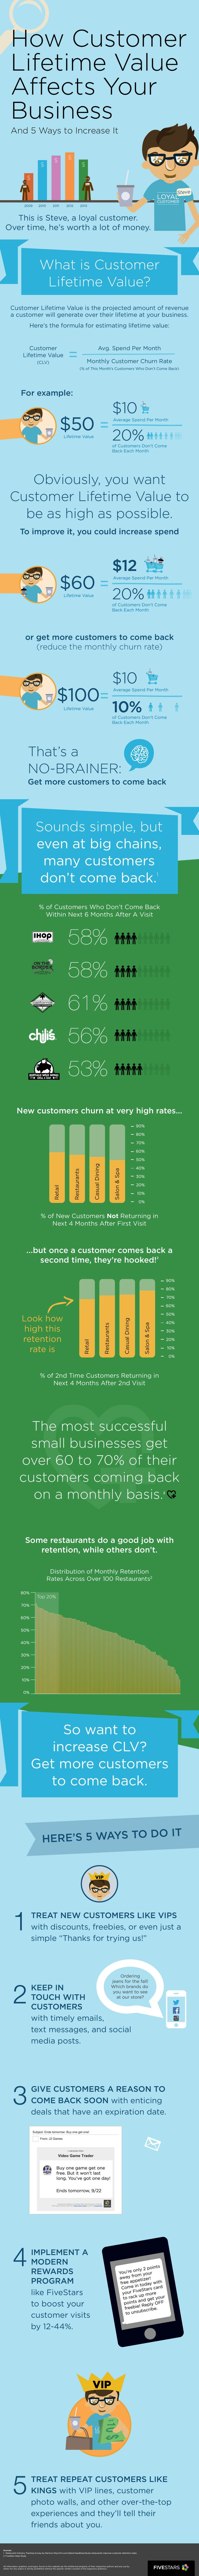 Infographic: How Customer Lifetime Value Affects Your Business, and 5 Ways to Increase It